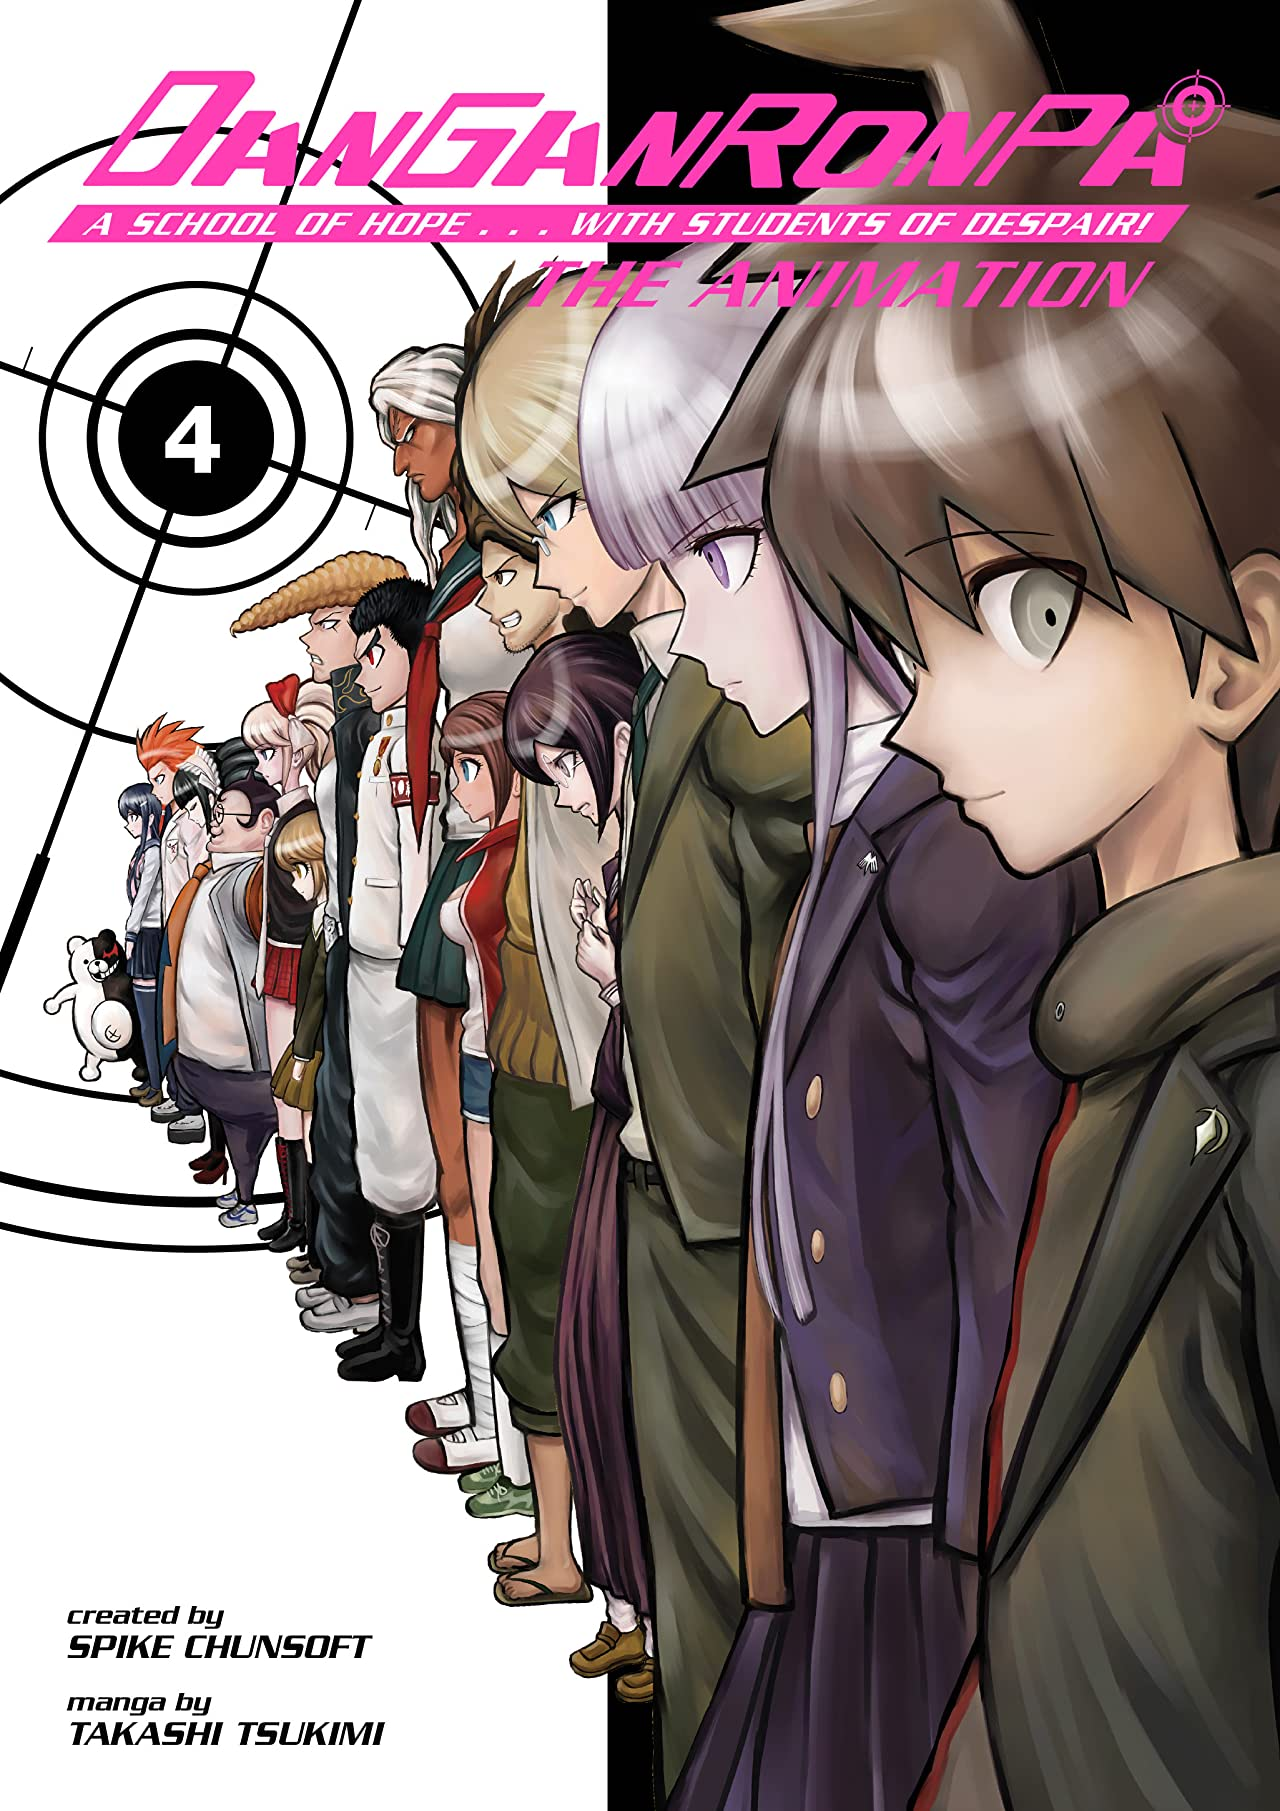 Danganronpa: The Animation Vol. 4